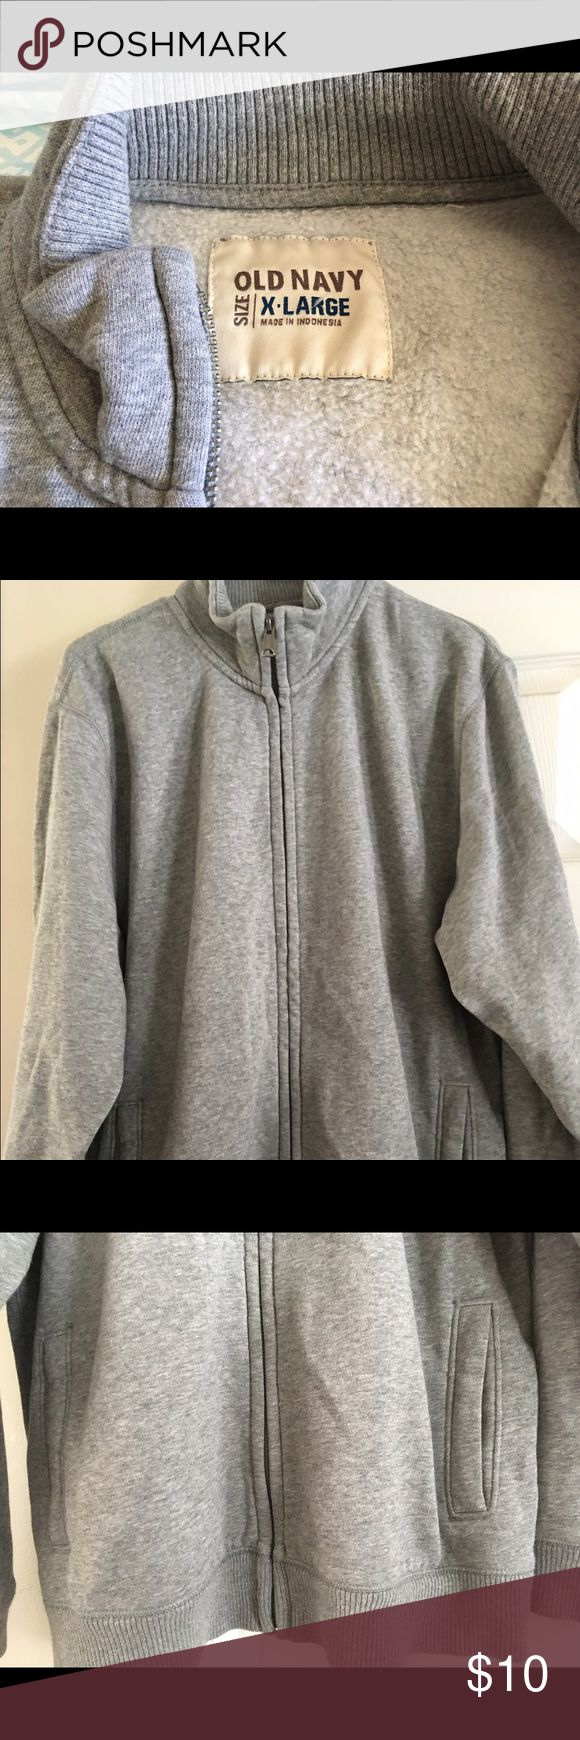 Men's Old Navy zip up sweater Great condition. Men's zip up sweater. Size XL Old Navy Sweaters Zip Up